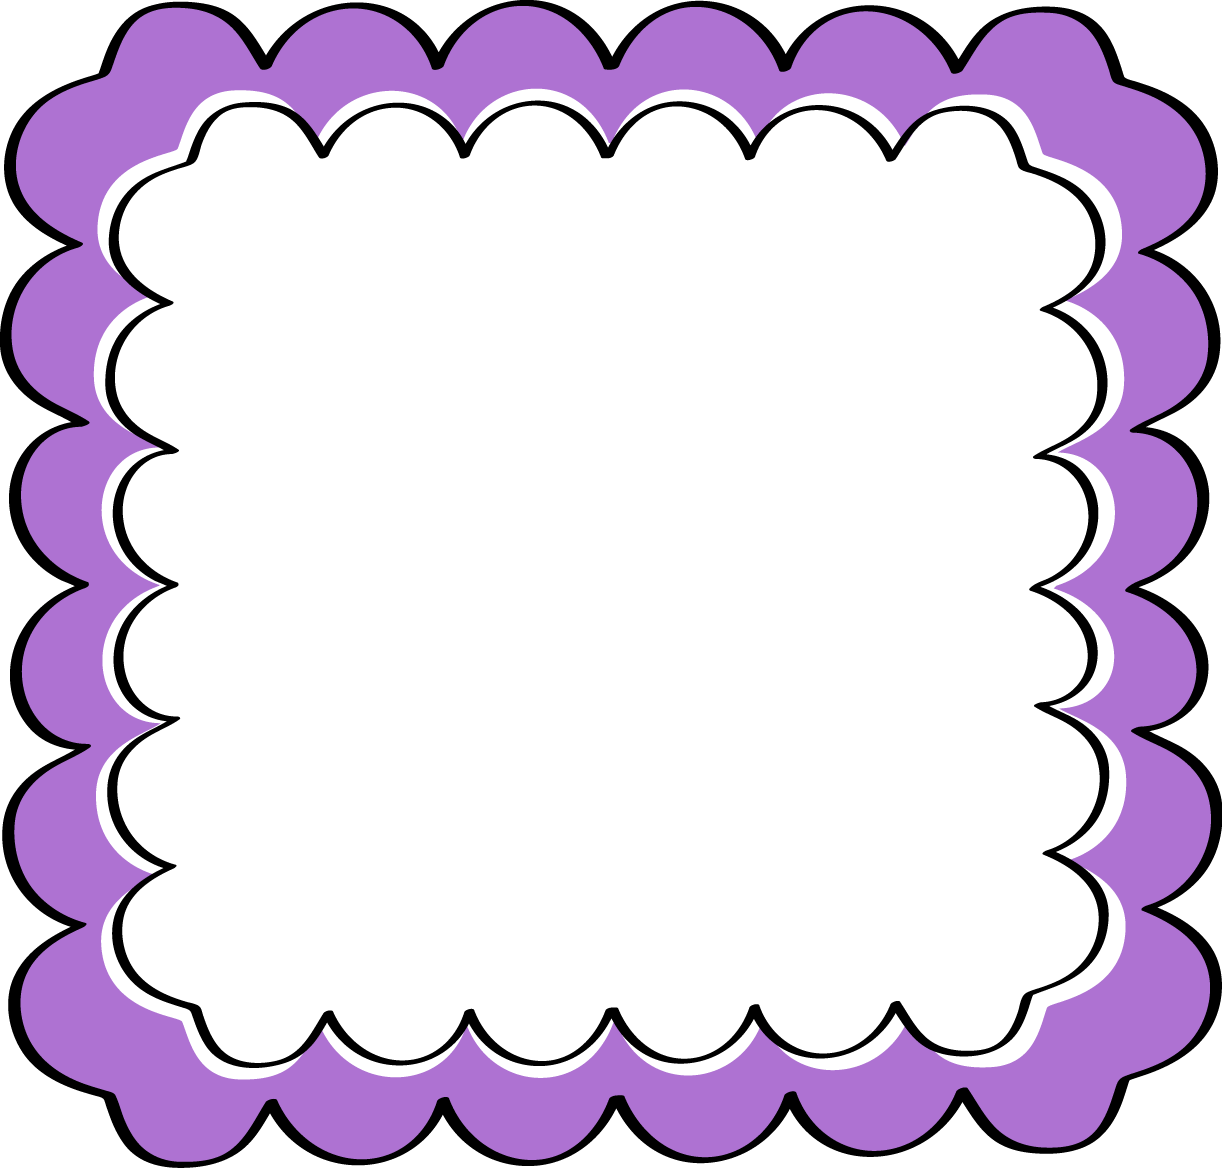 image clipart borders and frames #59842376